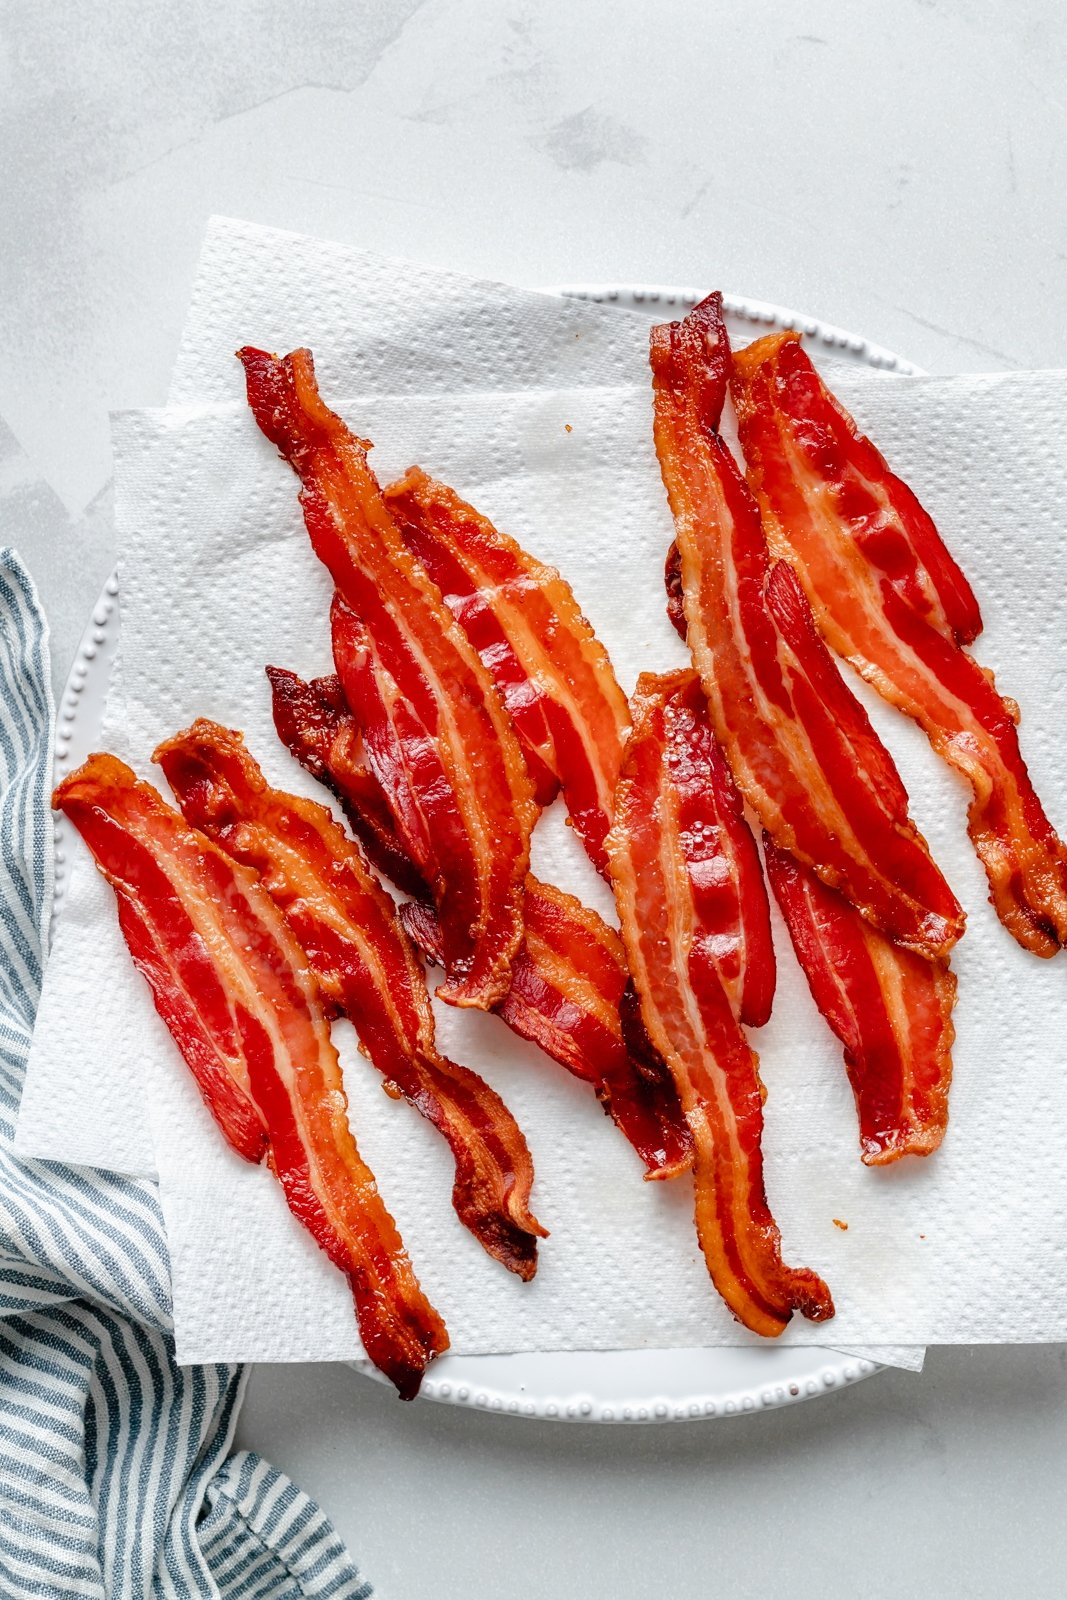 crispy bacon on a plate with paper towels